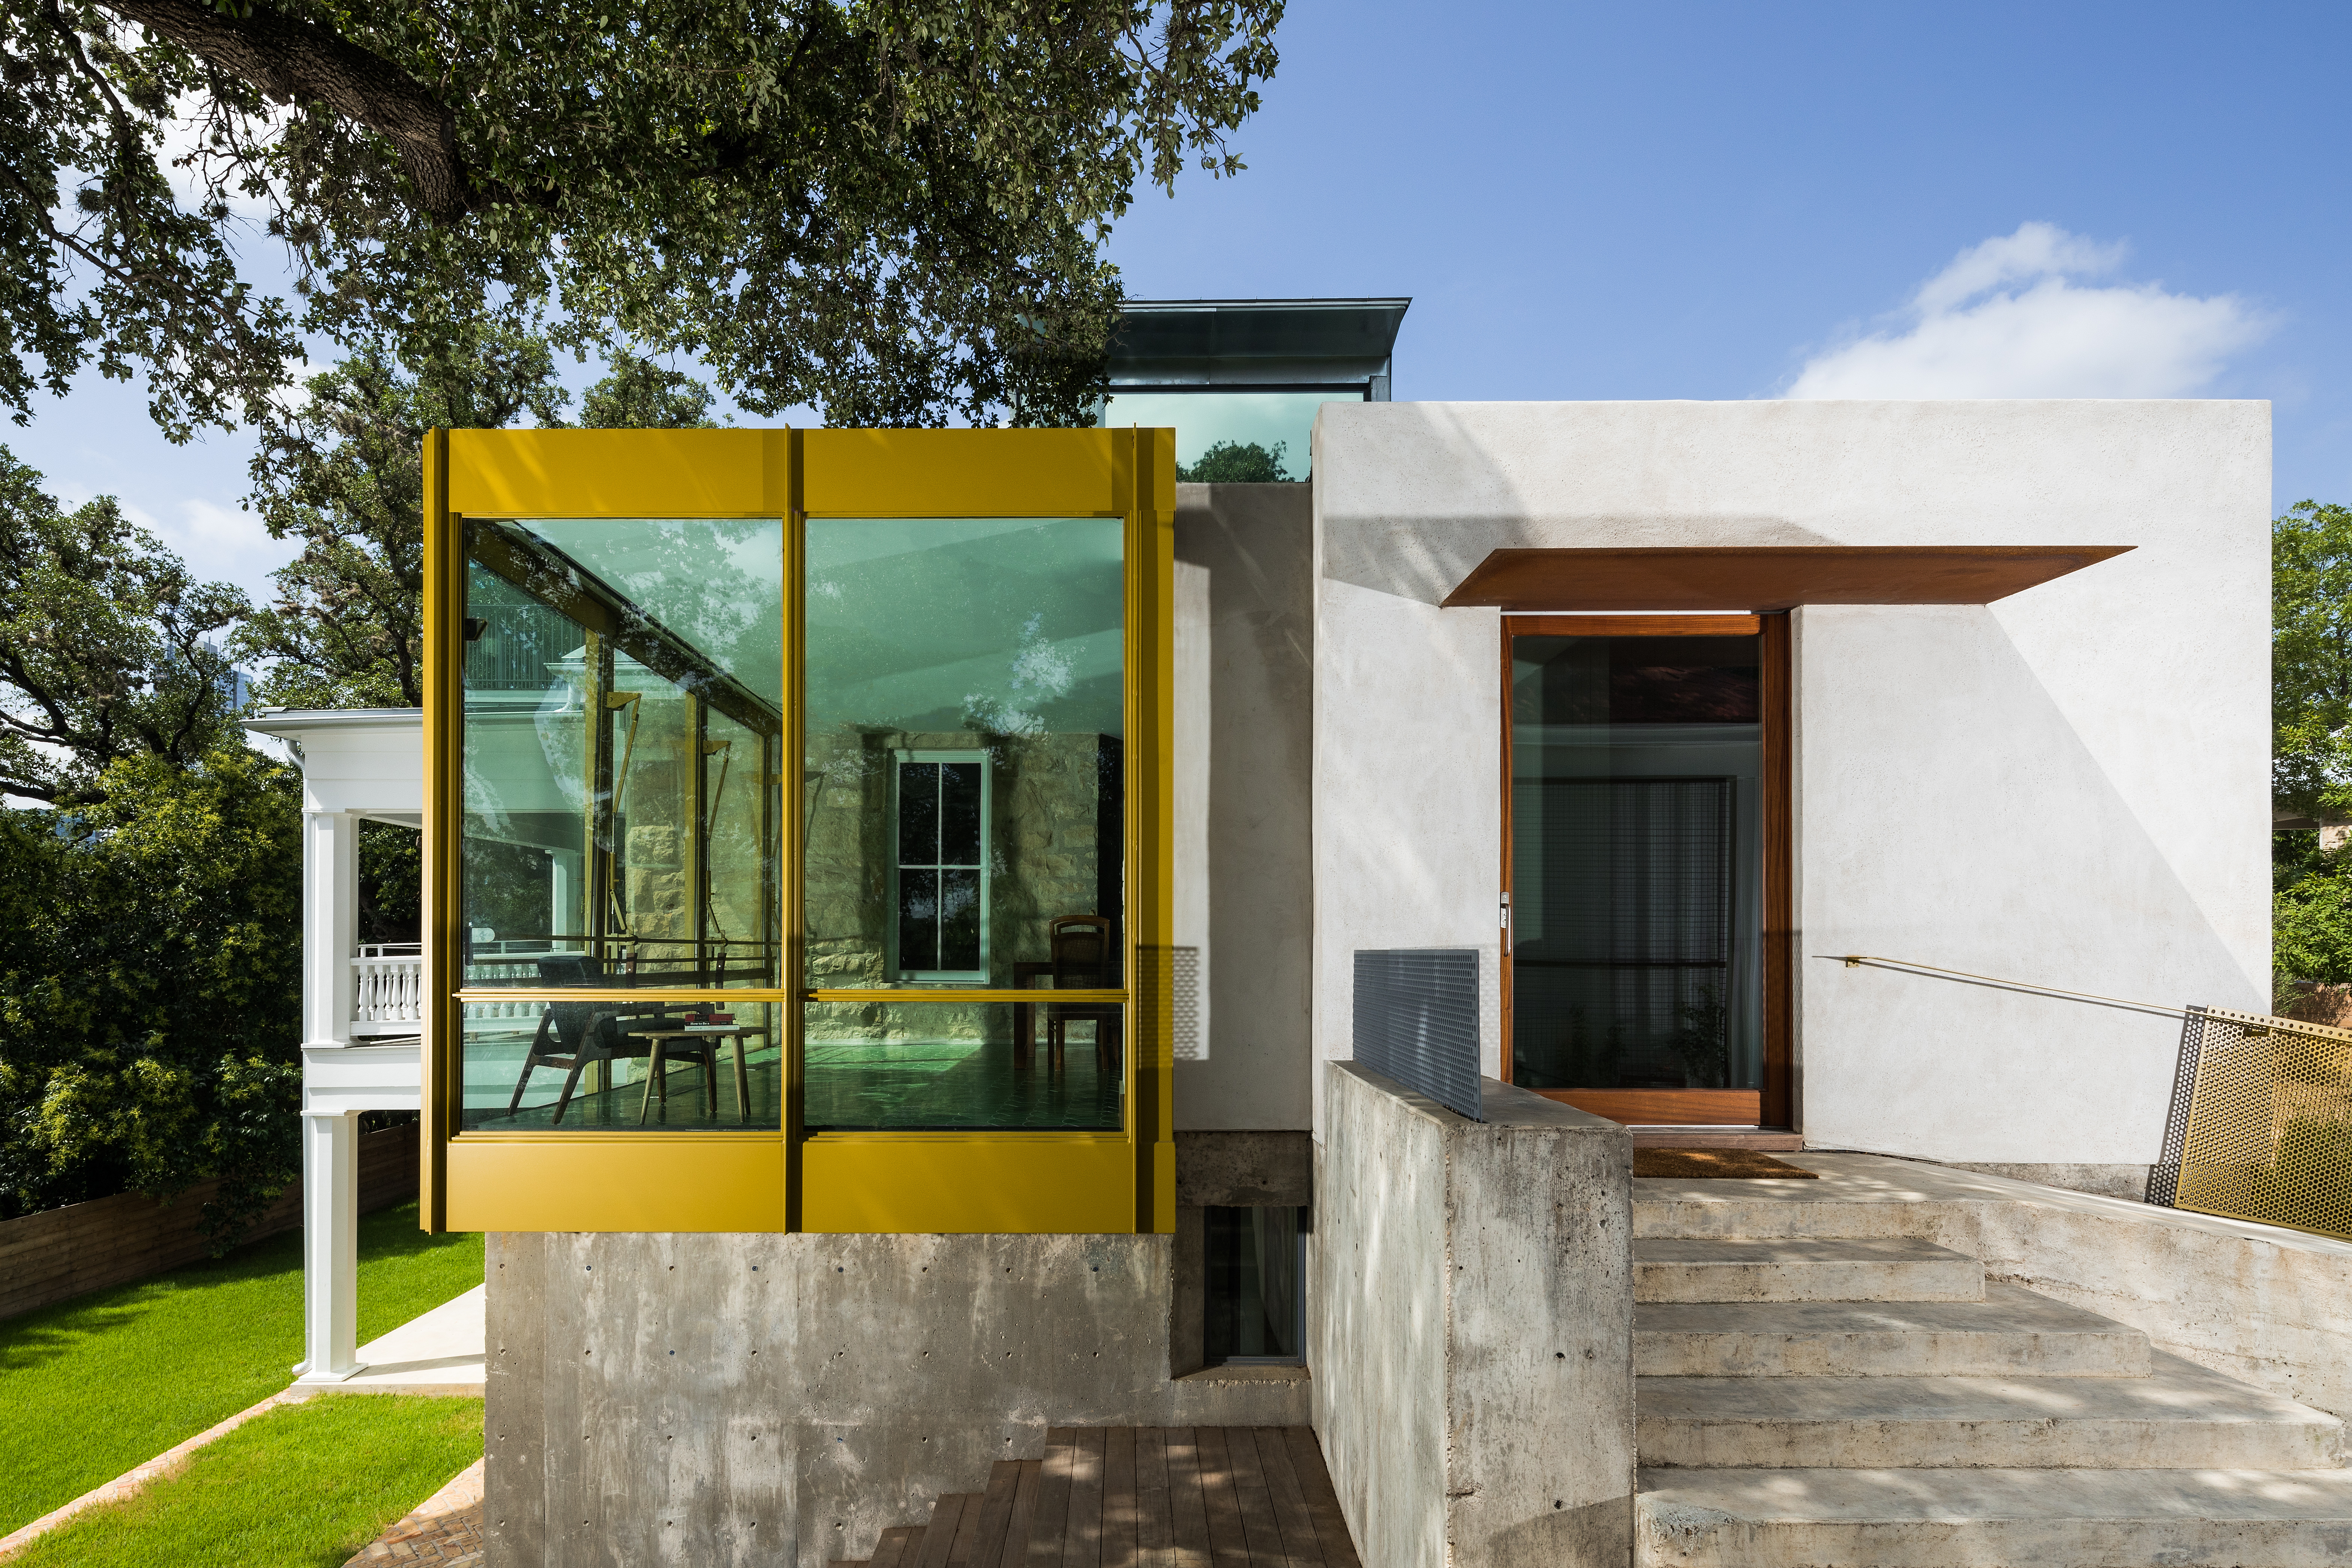 A split level traditional stone house with a very contemporary yellow and white addition in front